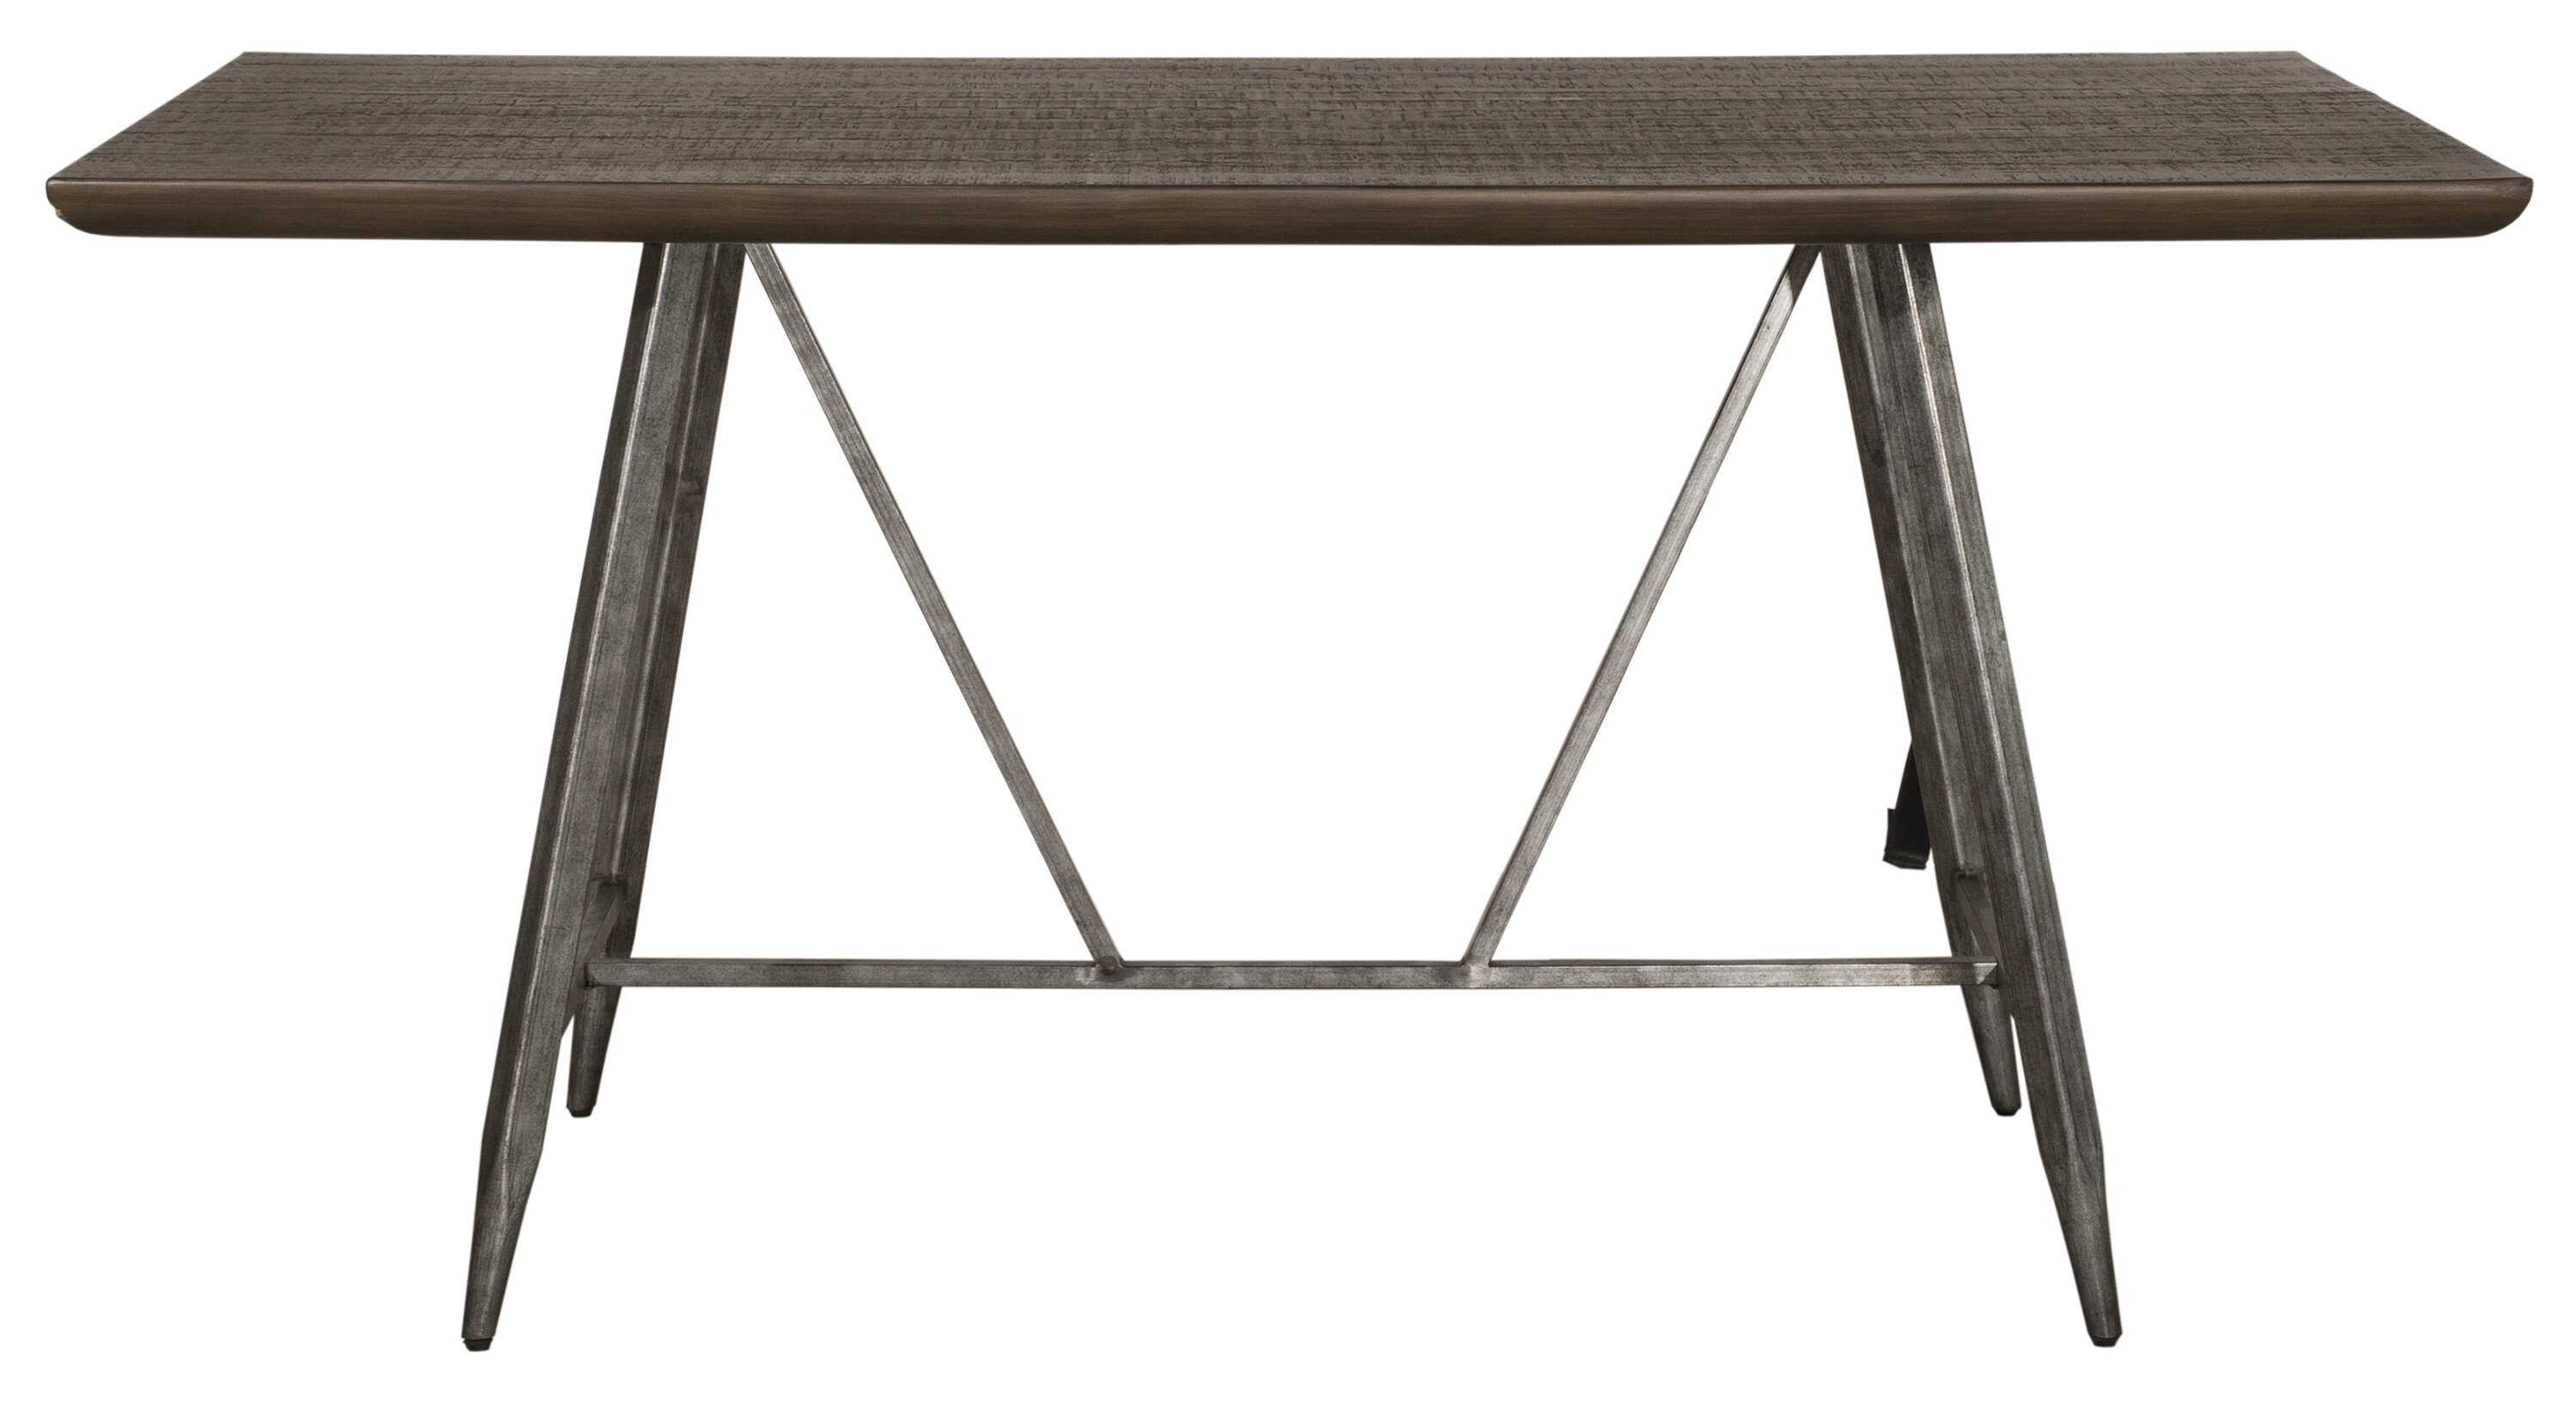 17 Stories Georgia Counter Height Dining Table Reviews Wayfair